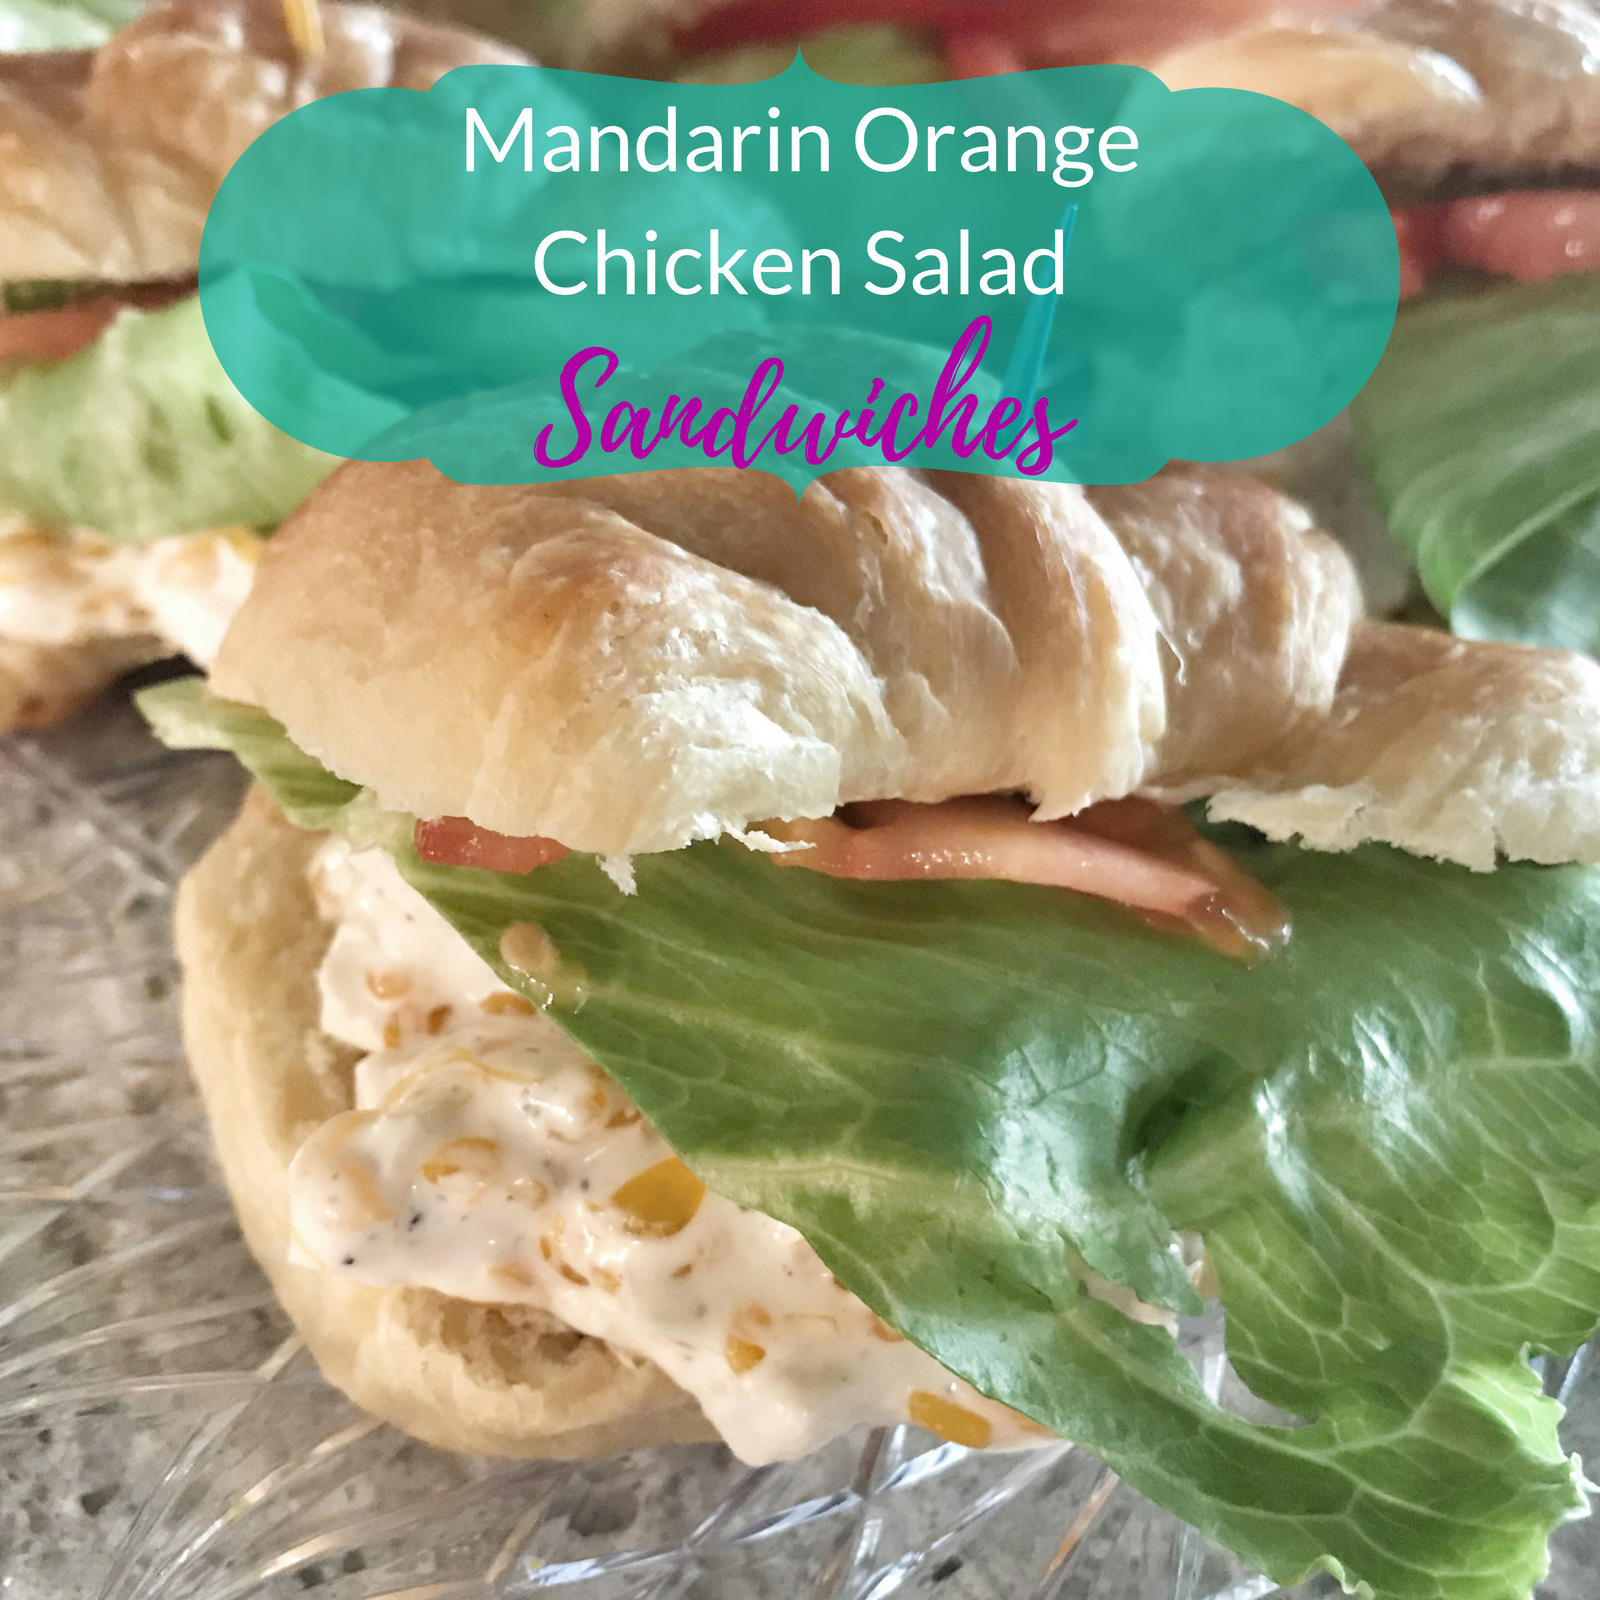 Mandarin Orange Chicken Salad Sandwiches